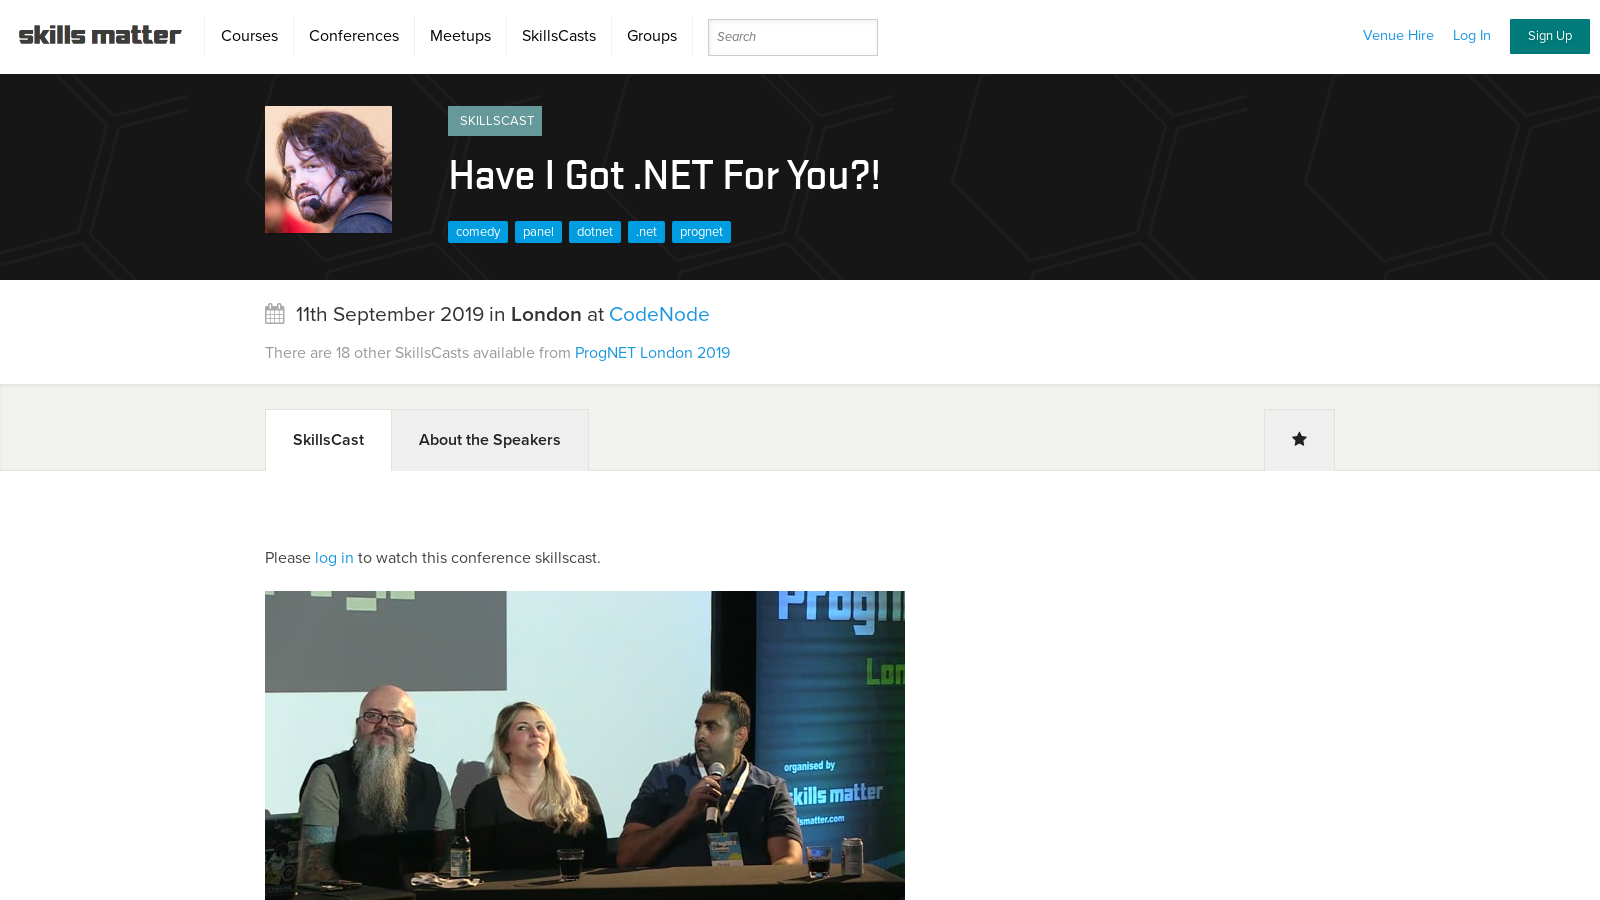 Have I Got .NET For You